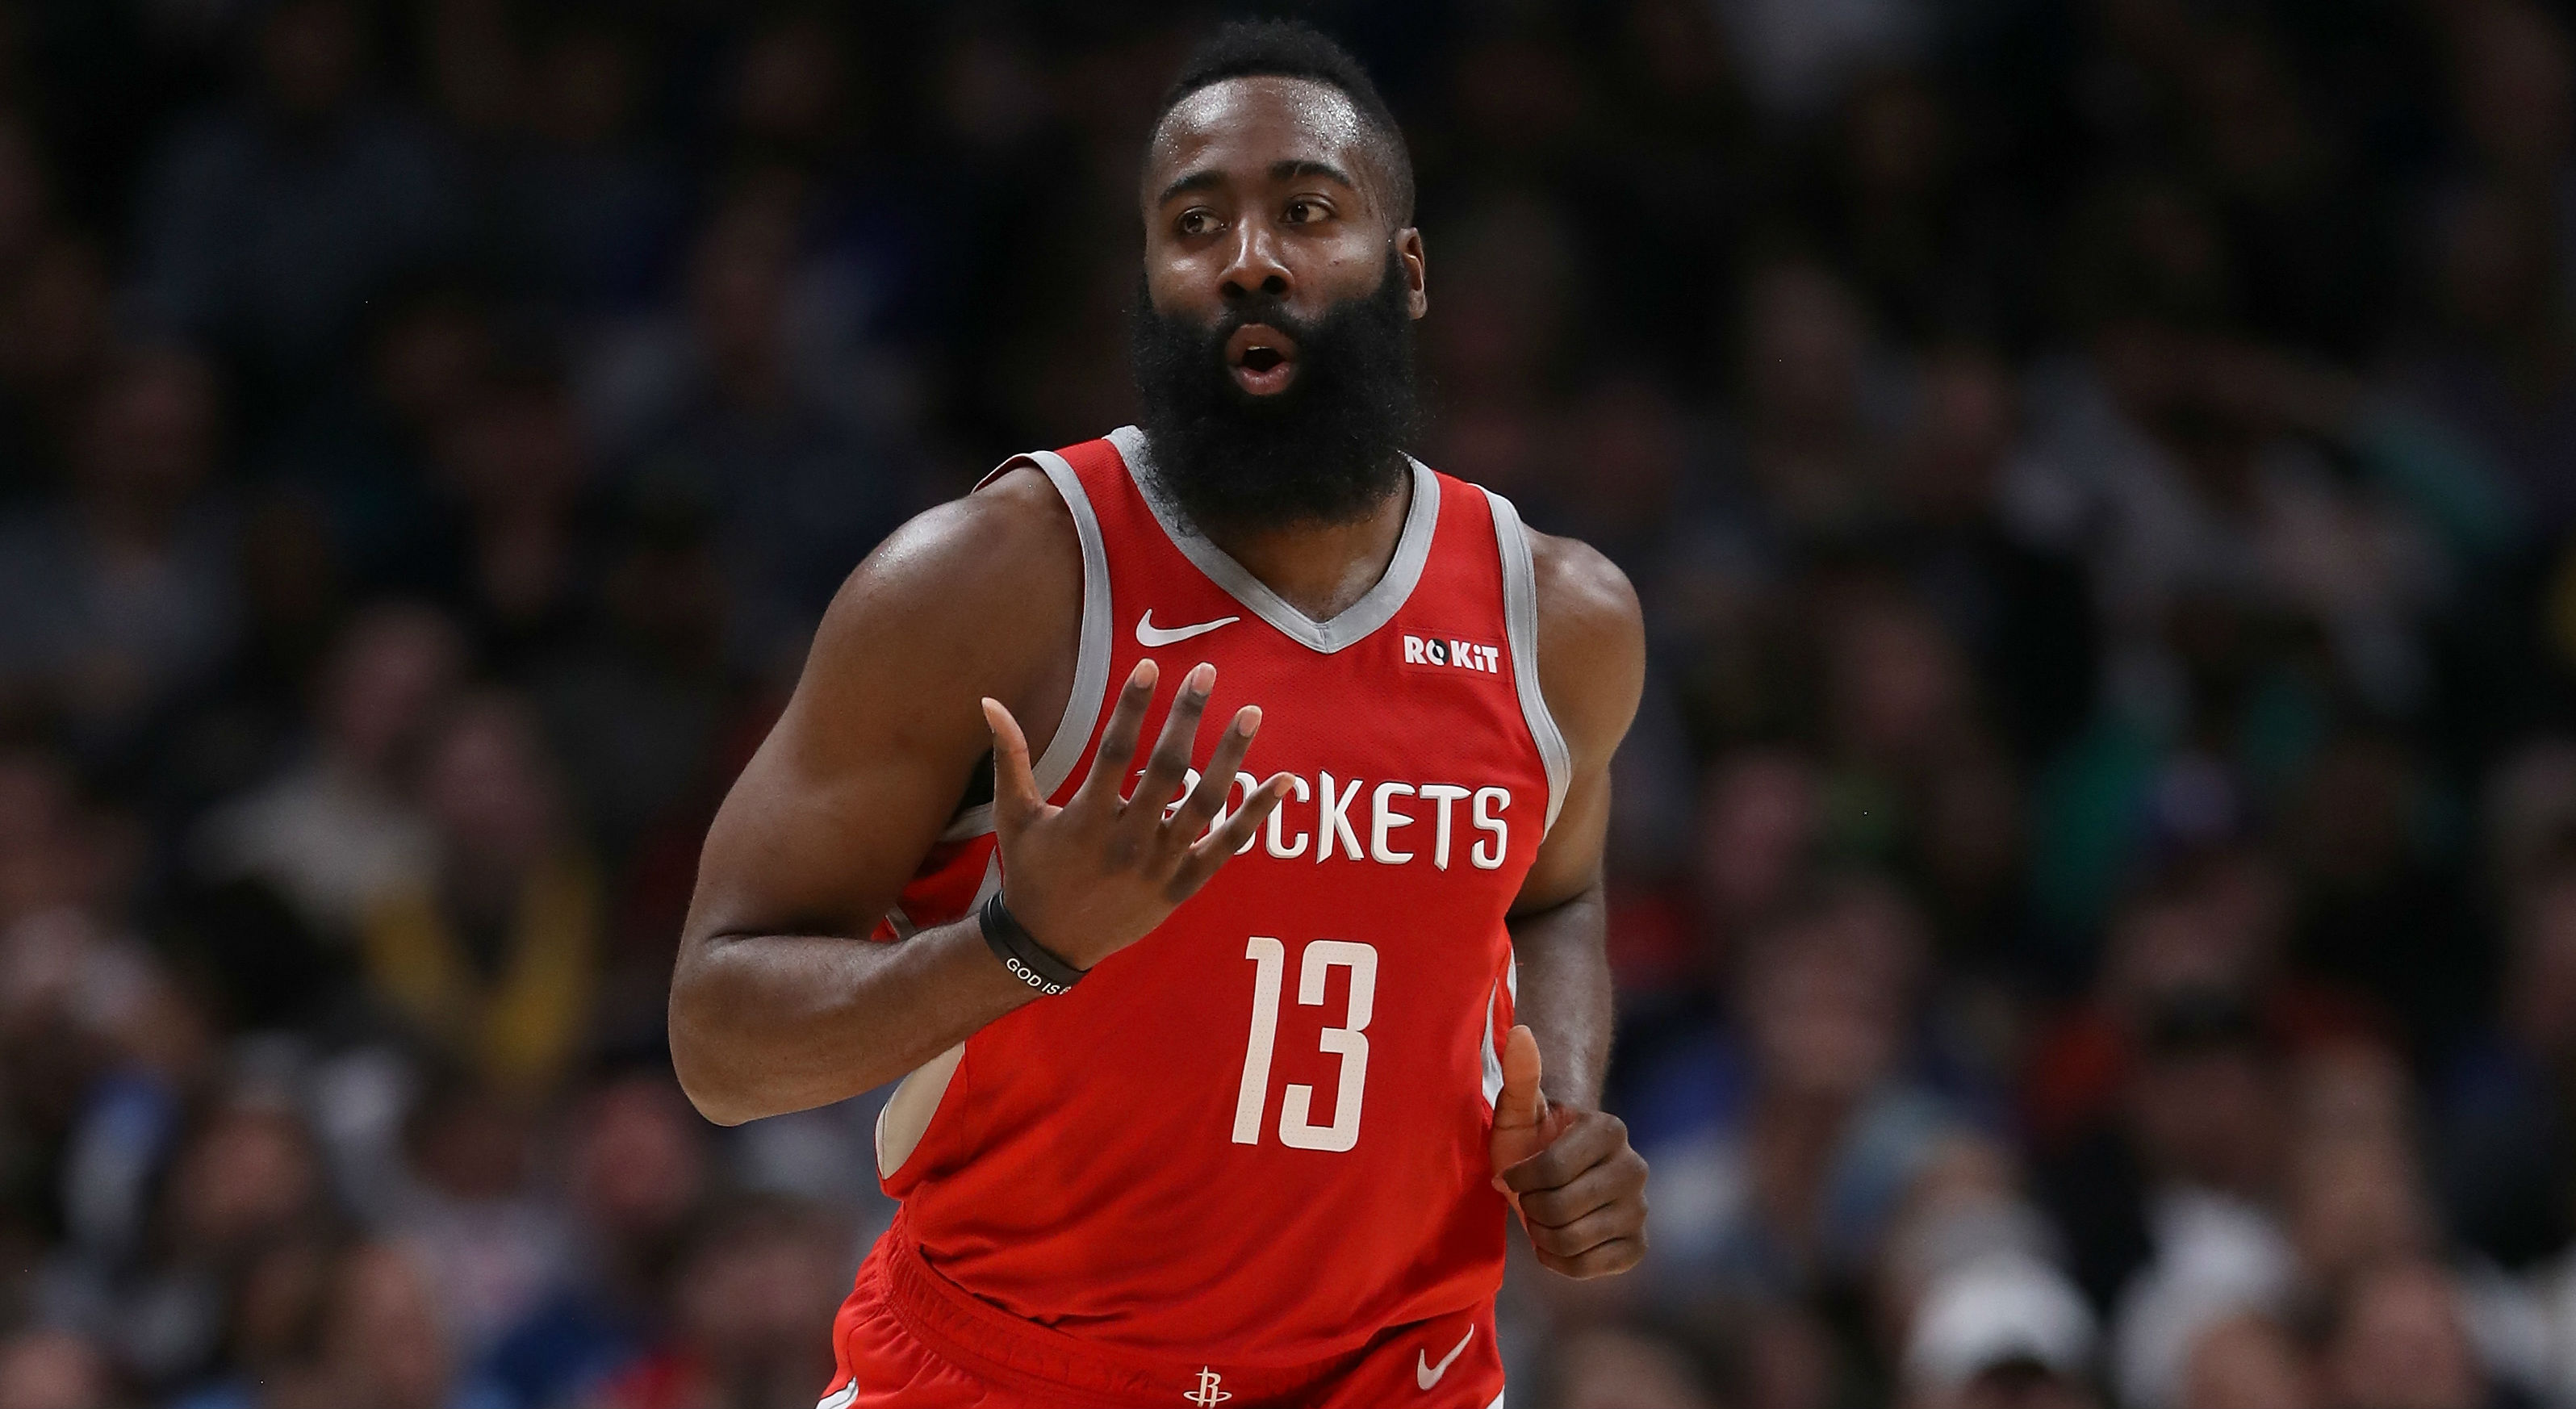 Austin Rivers on James Harden: 'He's unguardable, man, come on bro'